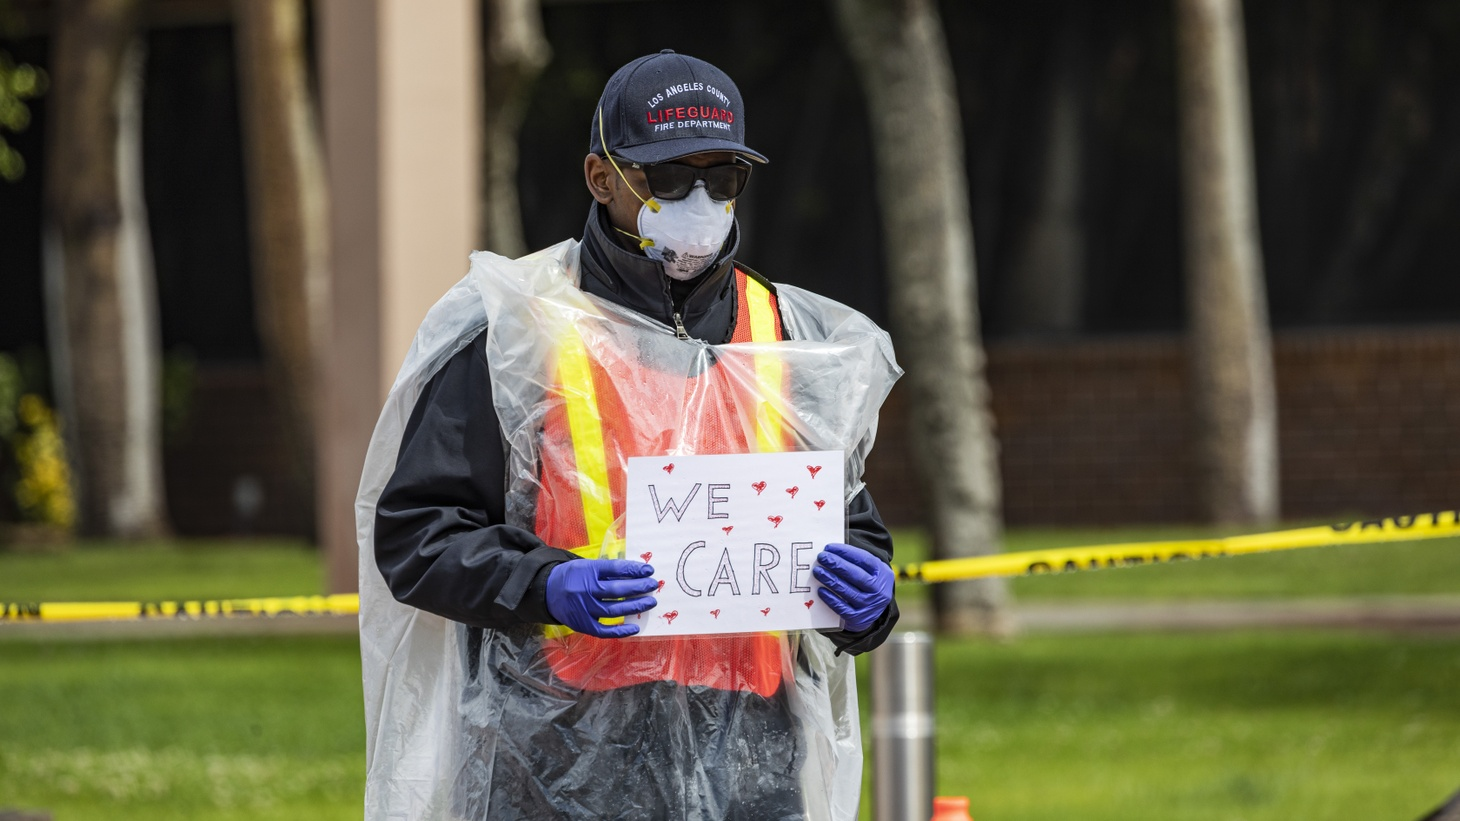 "At a COVID-19 testing site in South LA, a man wears a medical mask and gloves. His sign says ""we care."" April 8, 2020."